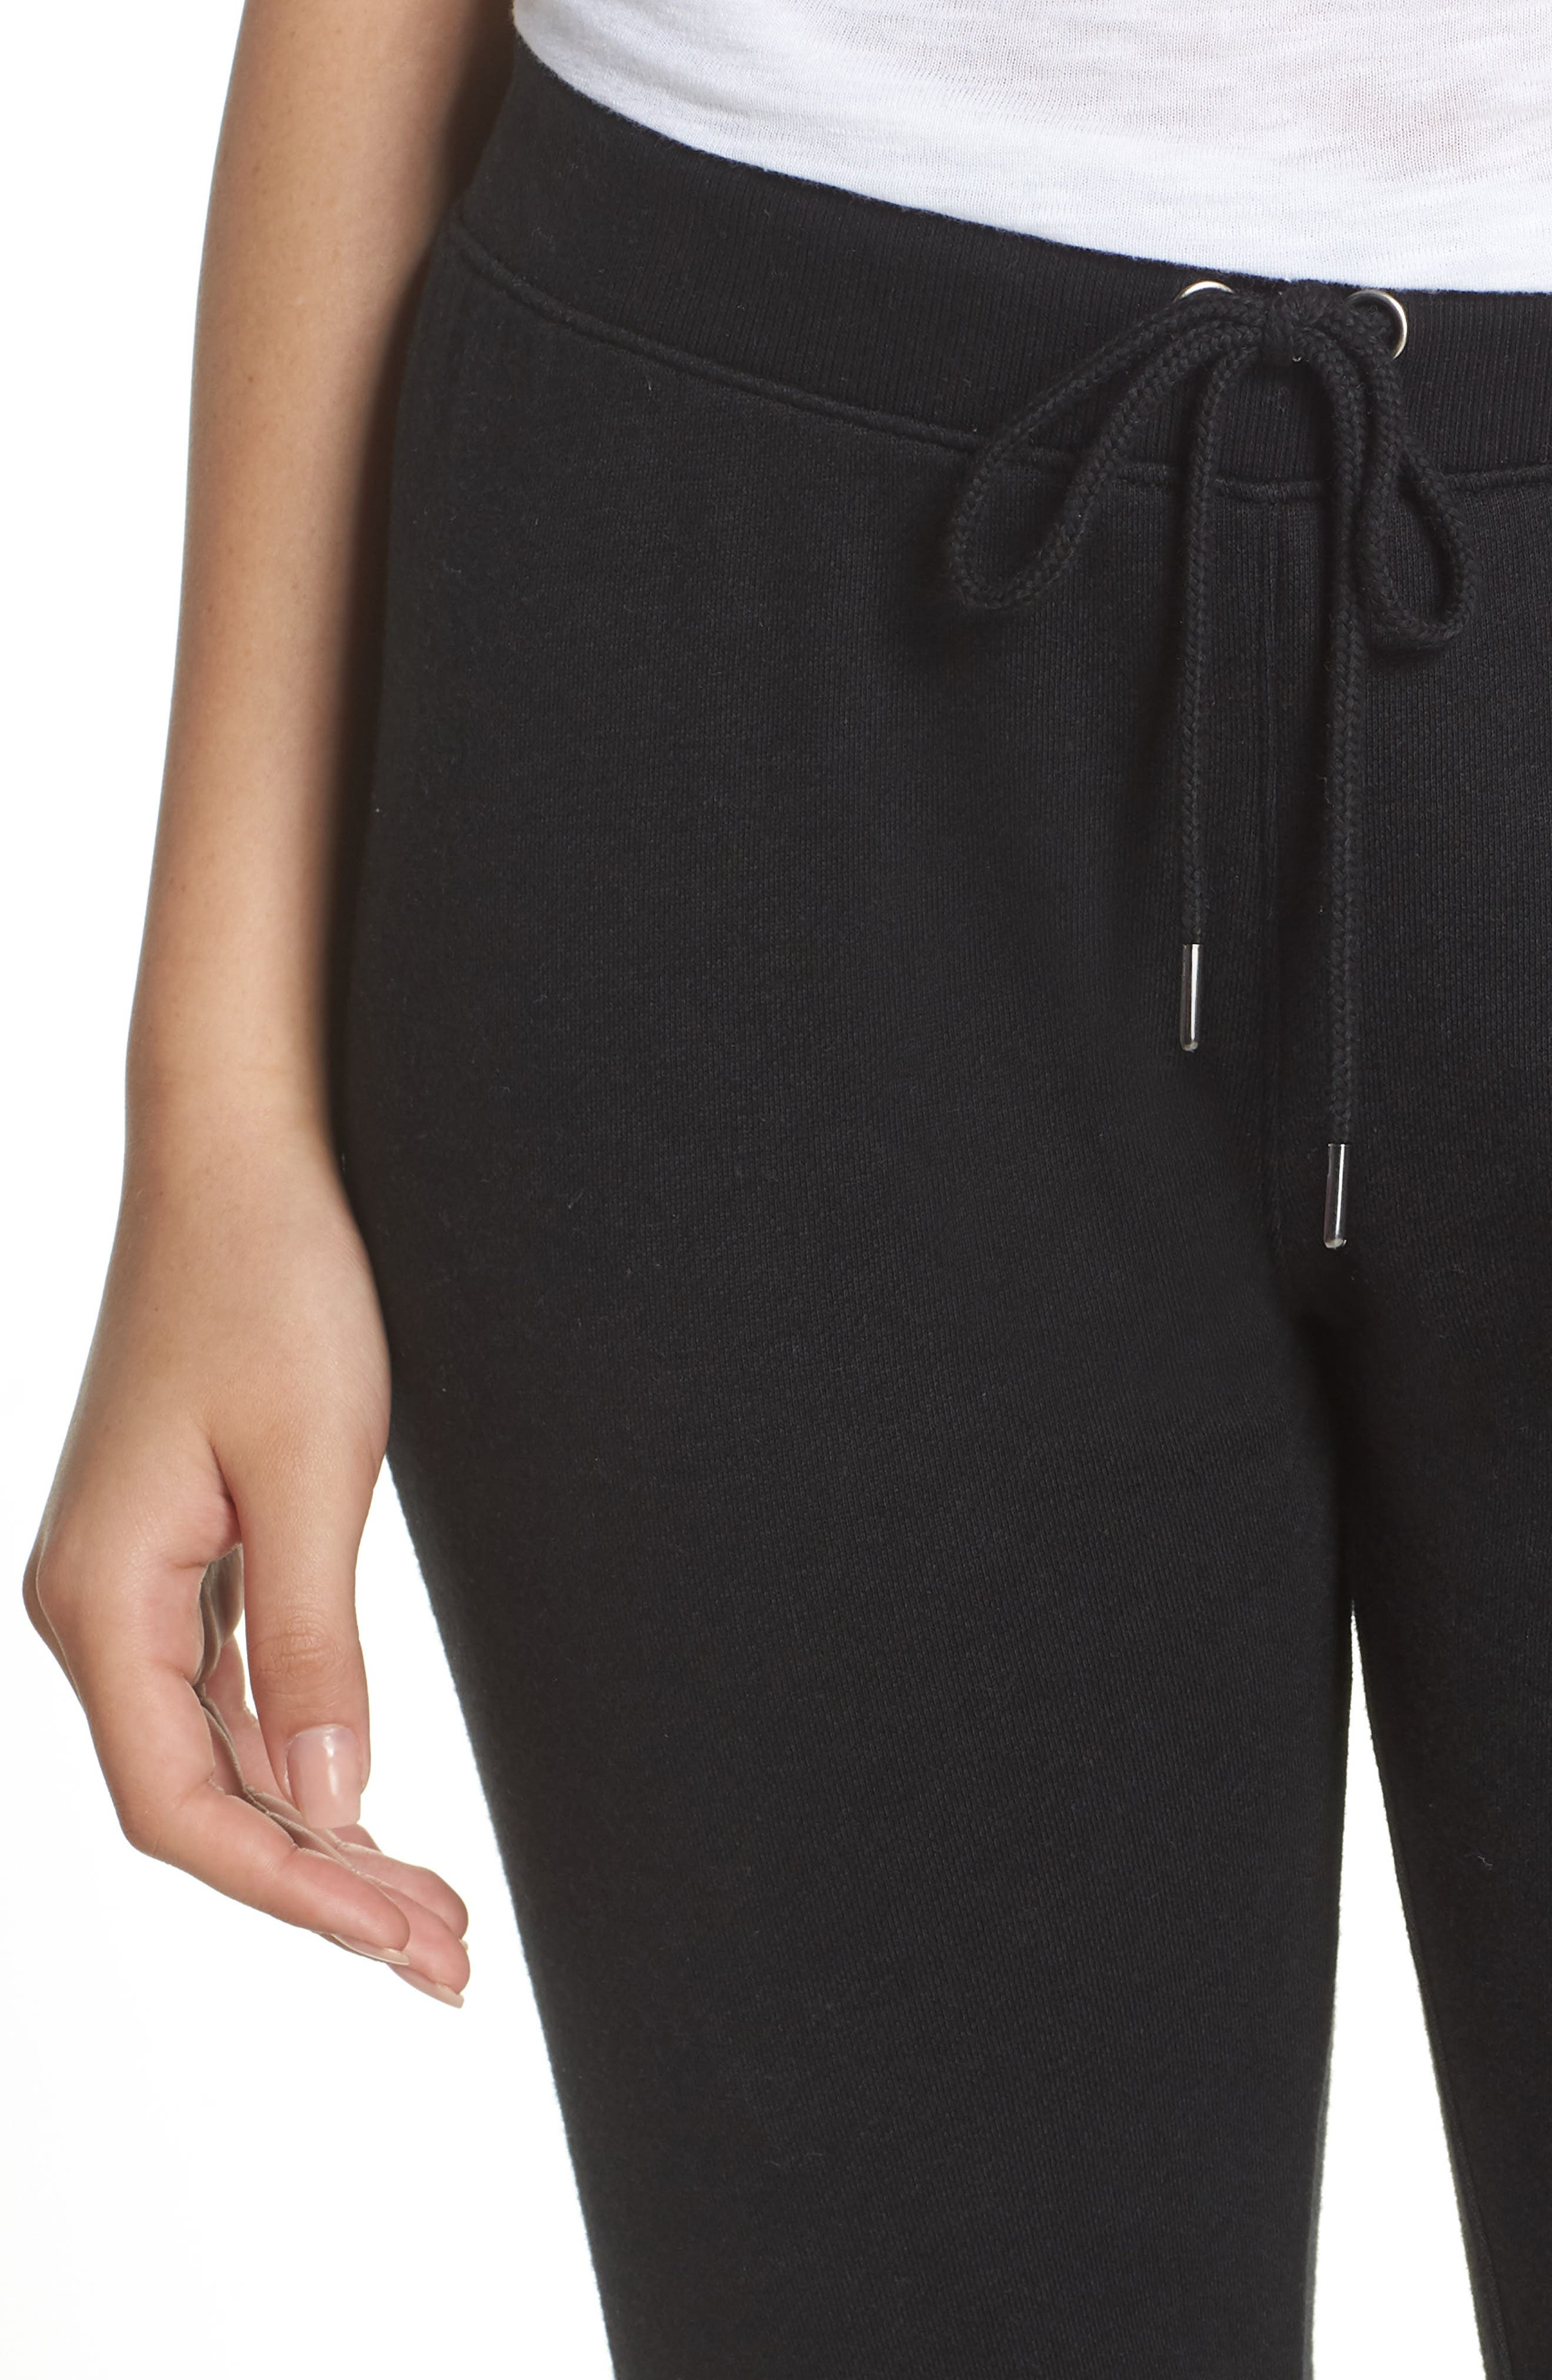 Loung Sweatpants,                             Alternate thumbnail 4, color,                             FADED BLACK